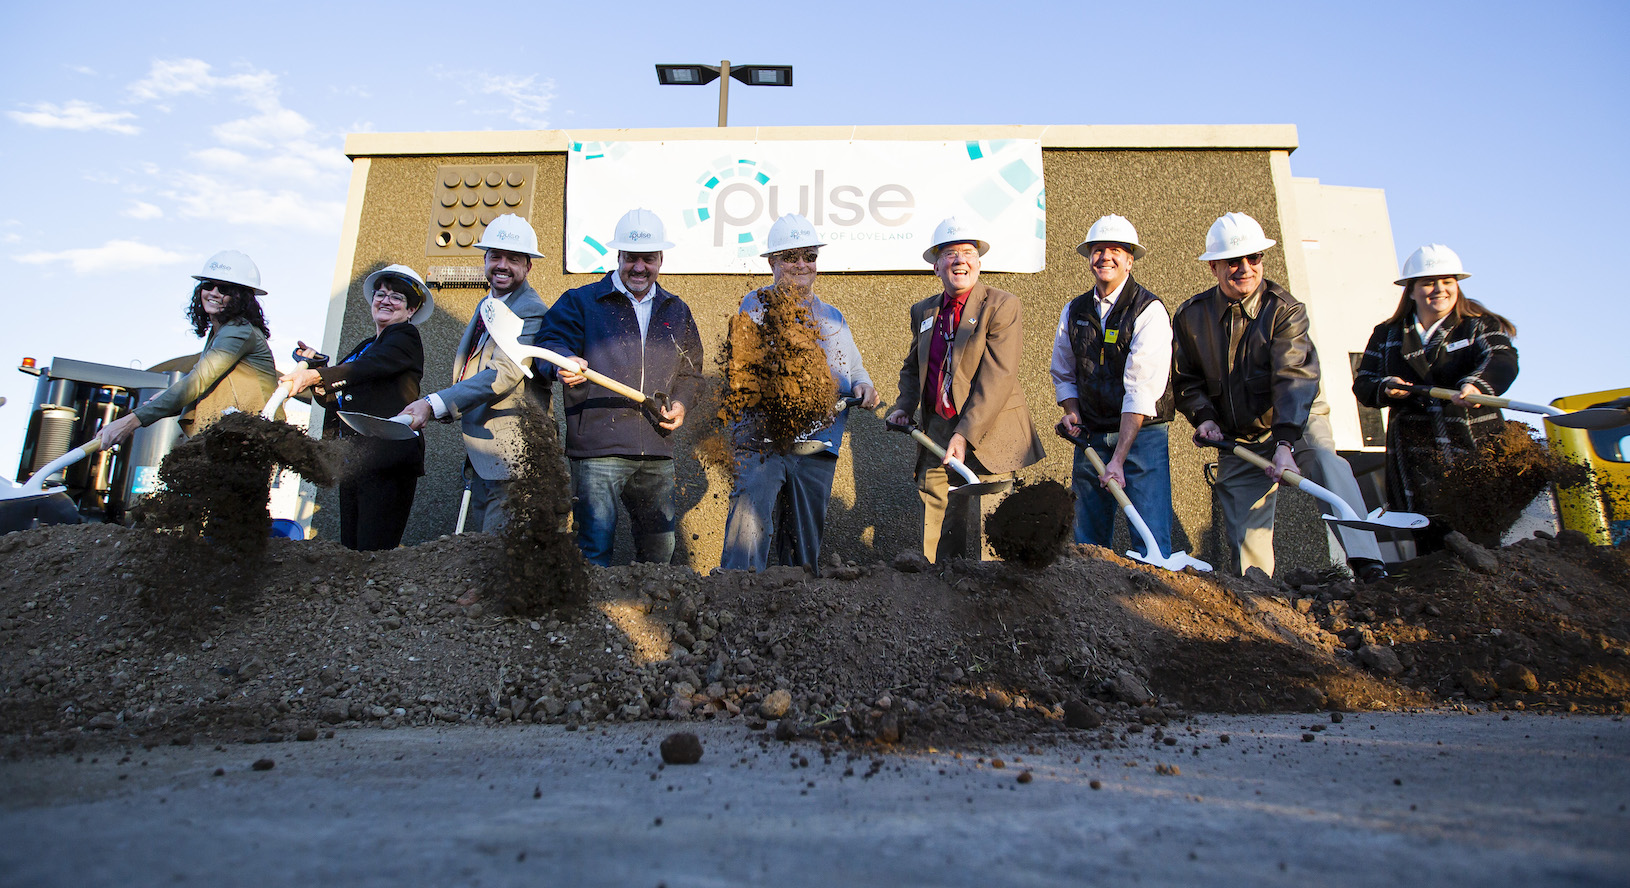 Pulsegroundbreaking001 20191113 th